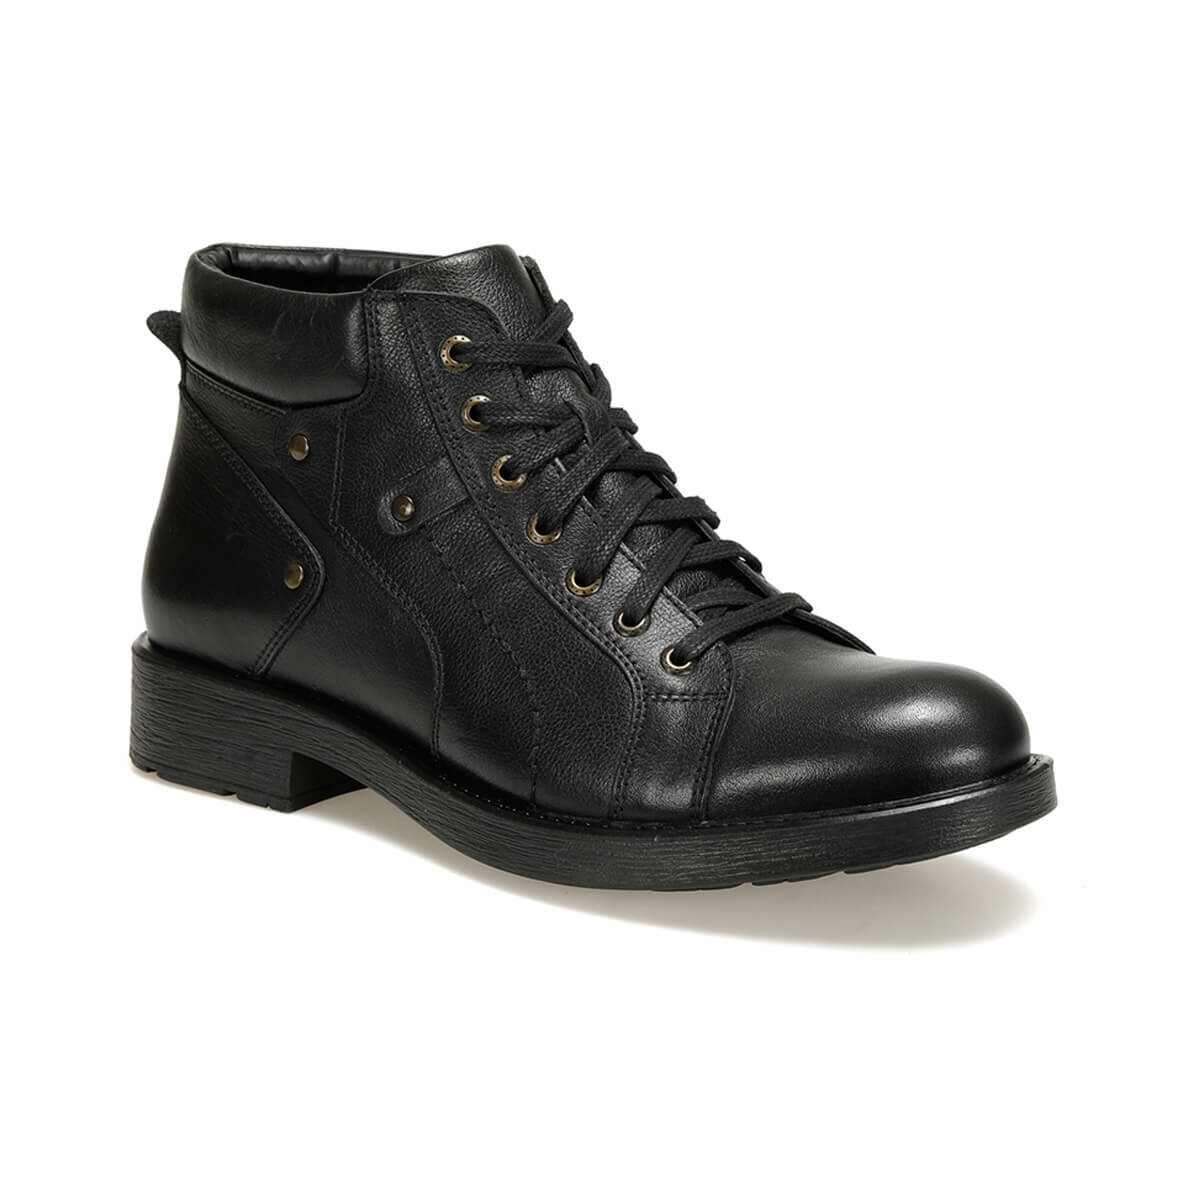 FLO 400-M Black Men Boots Oxide